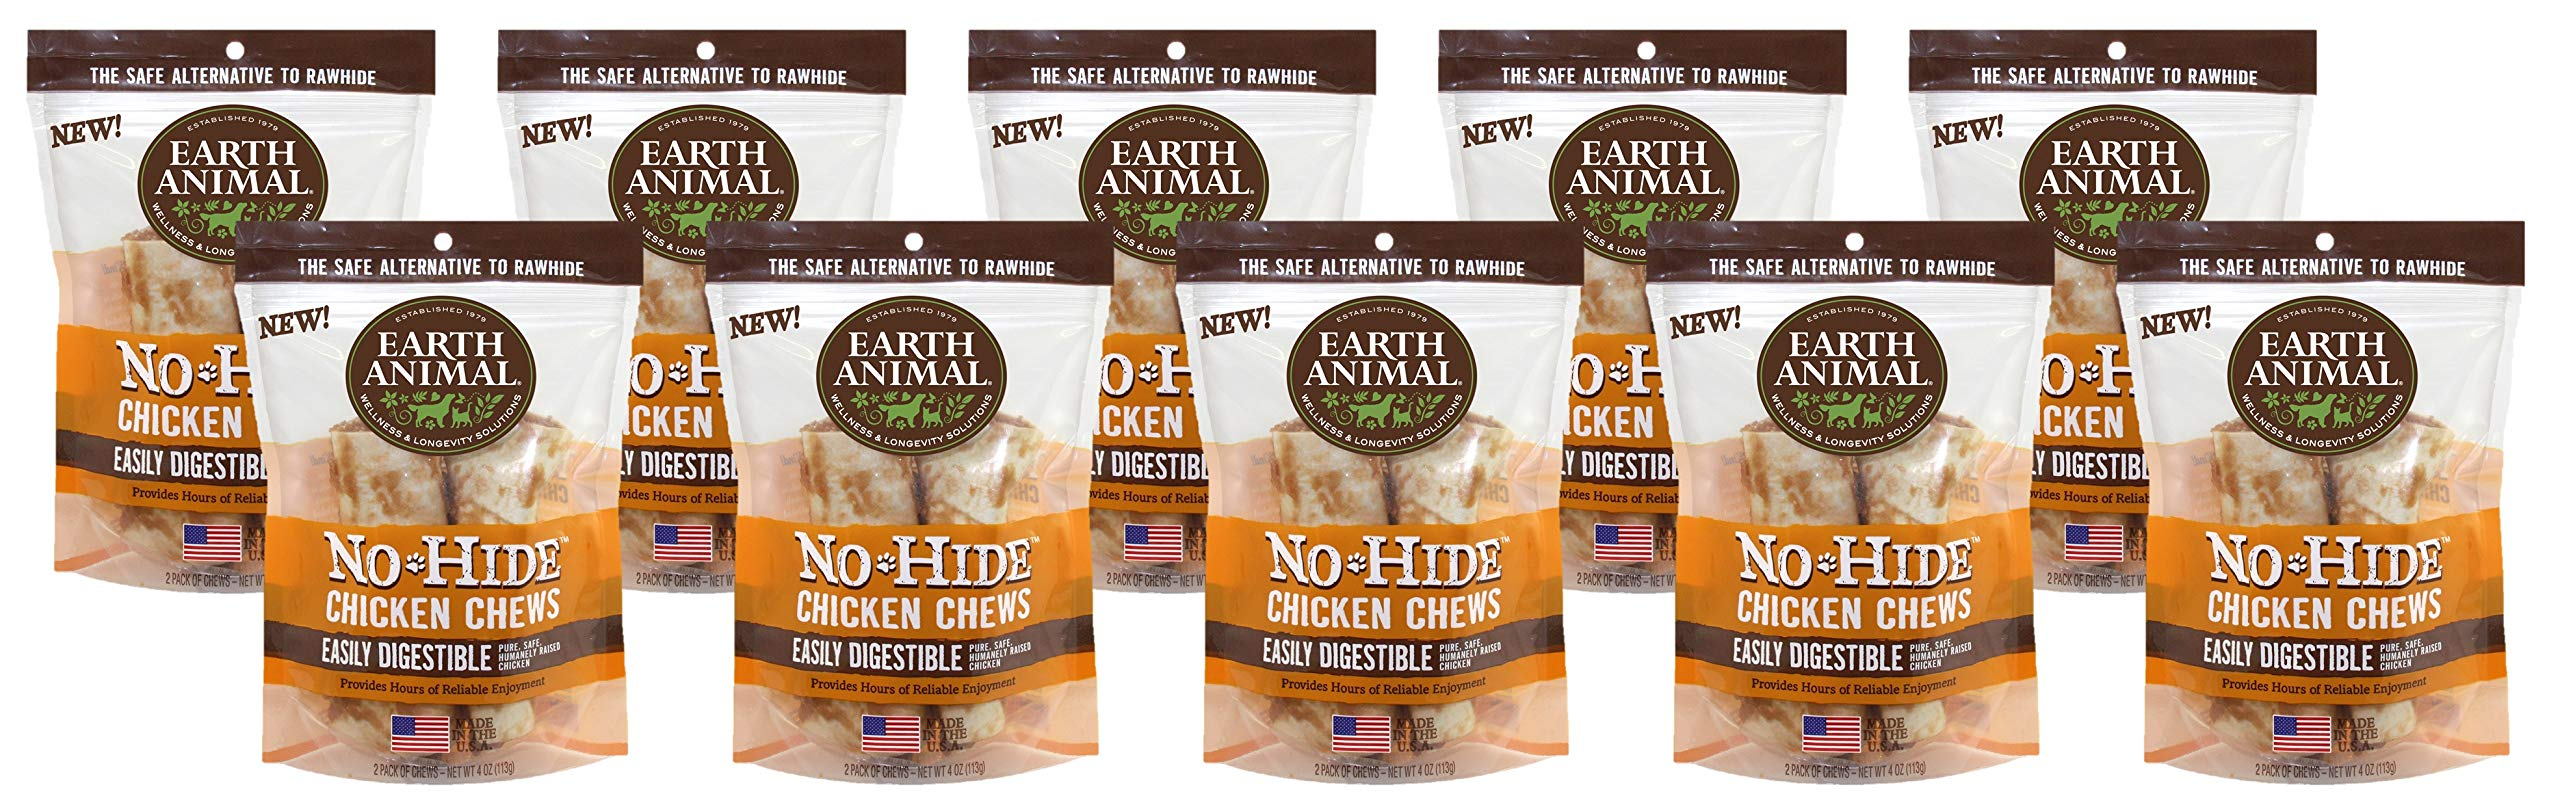 Earth Animal 20 Count No-Hide Chicken Chews, Small 4 Inch, Rawhide Alternative for Dogs Up to 45 Pounds by Earth Animal